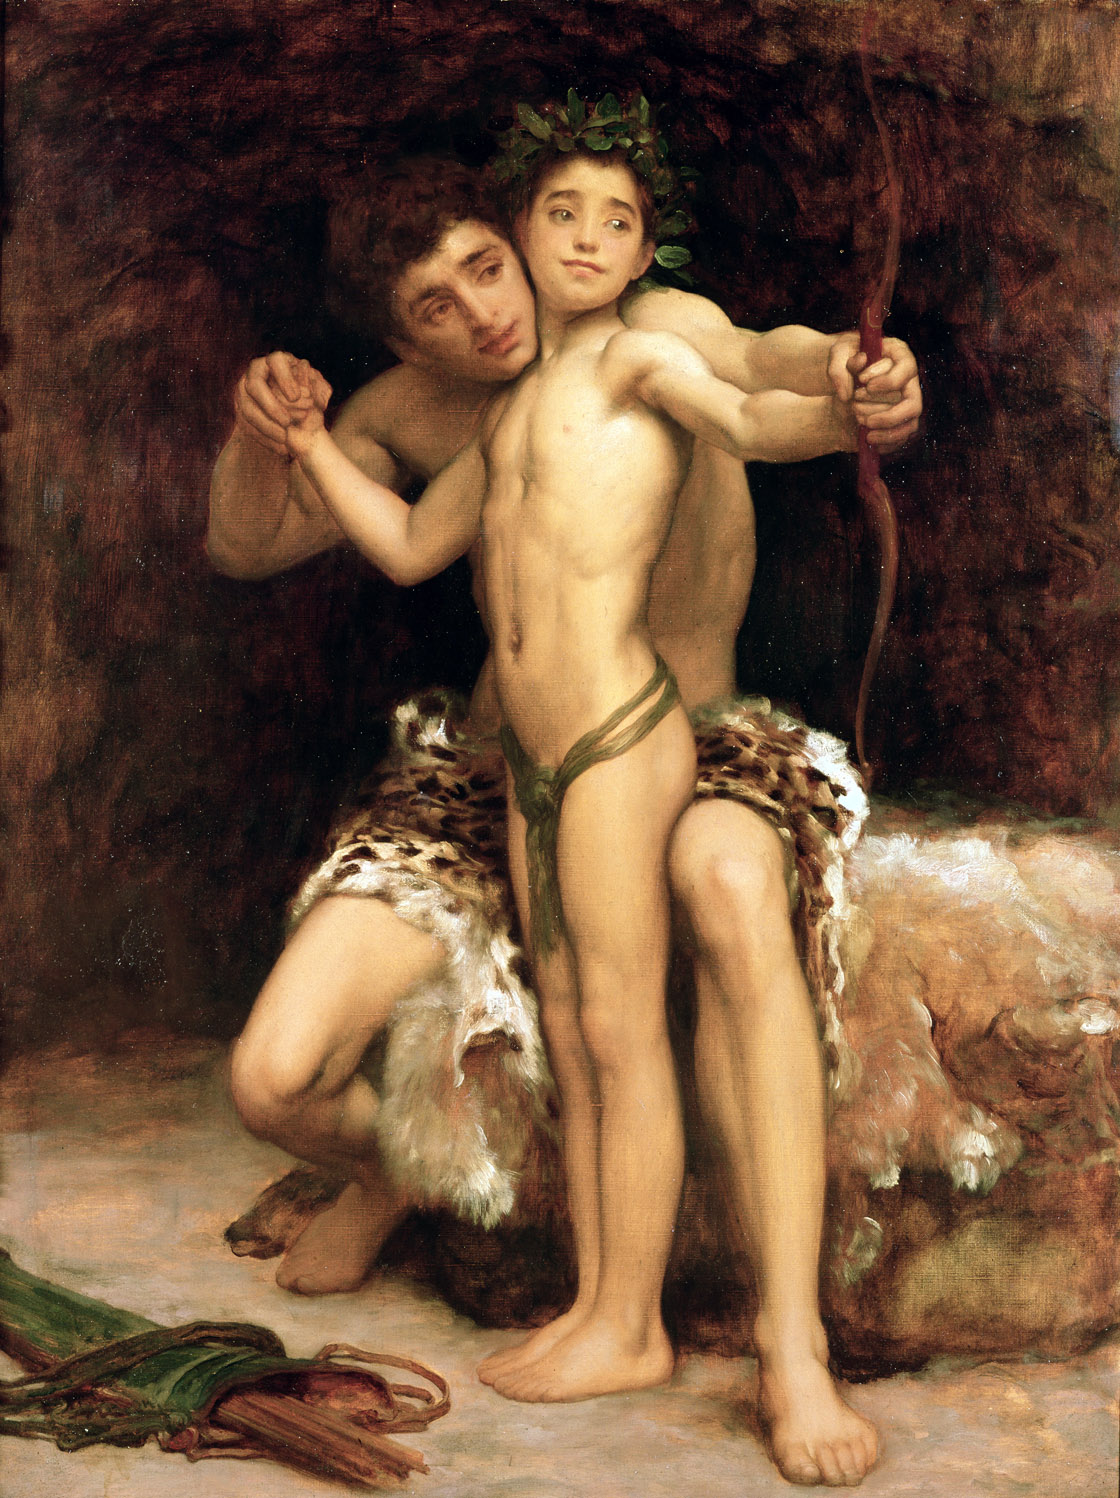 The Hit, by Frederic Leighton, c. 1890.